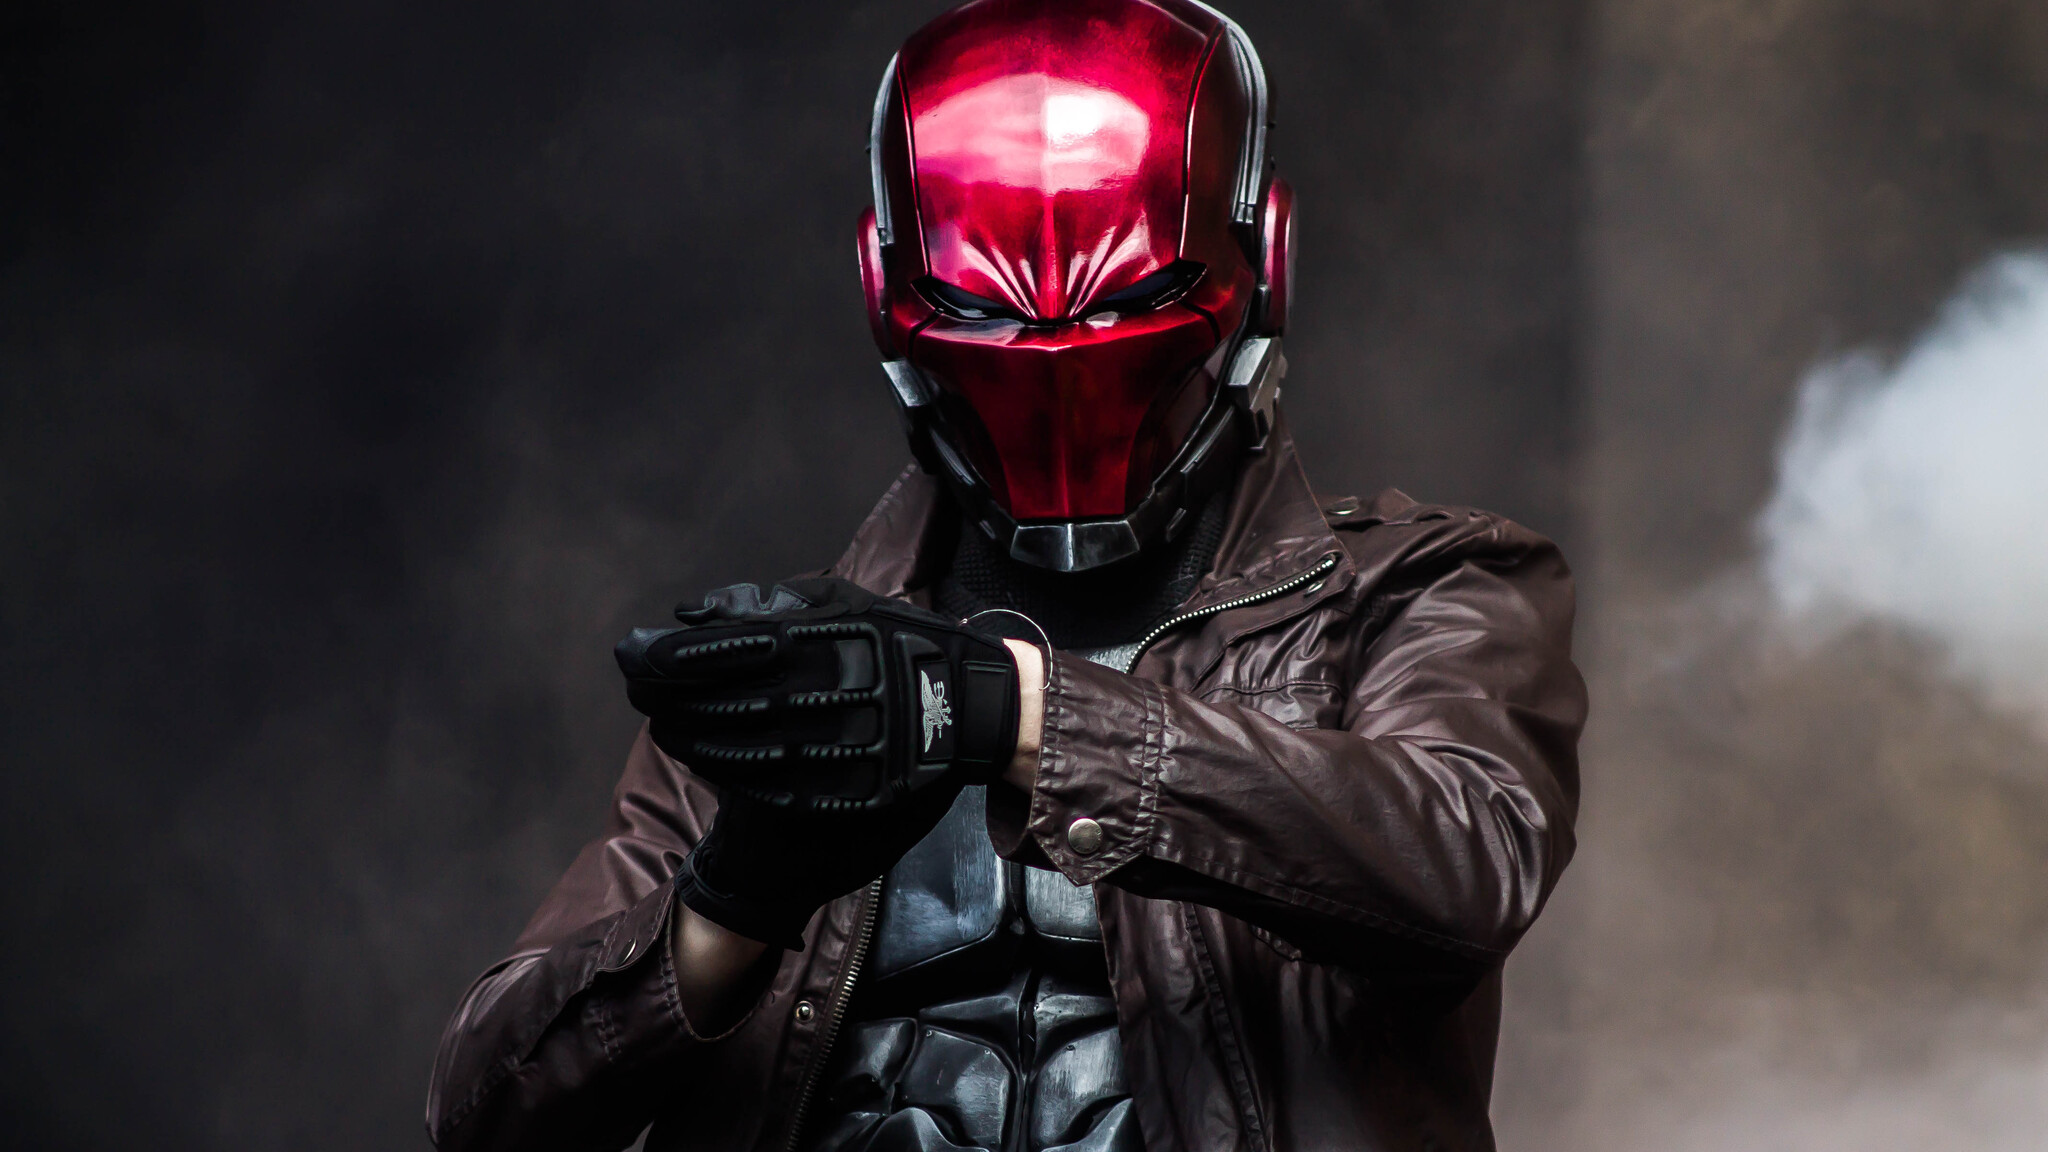 2048x1152 Red Hood Cosplay 4k 2019 2048x1152 Resolution HD ...